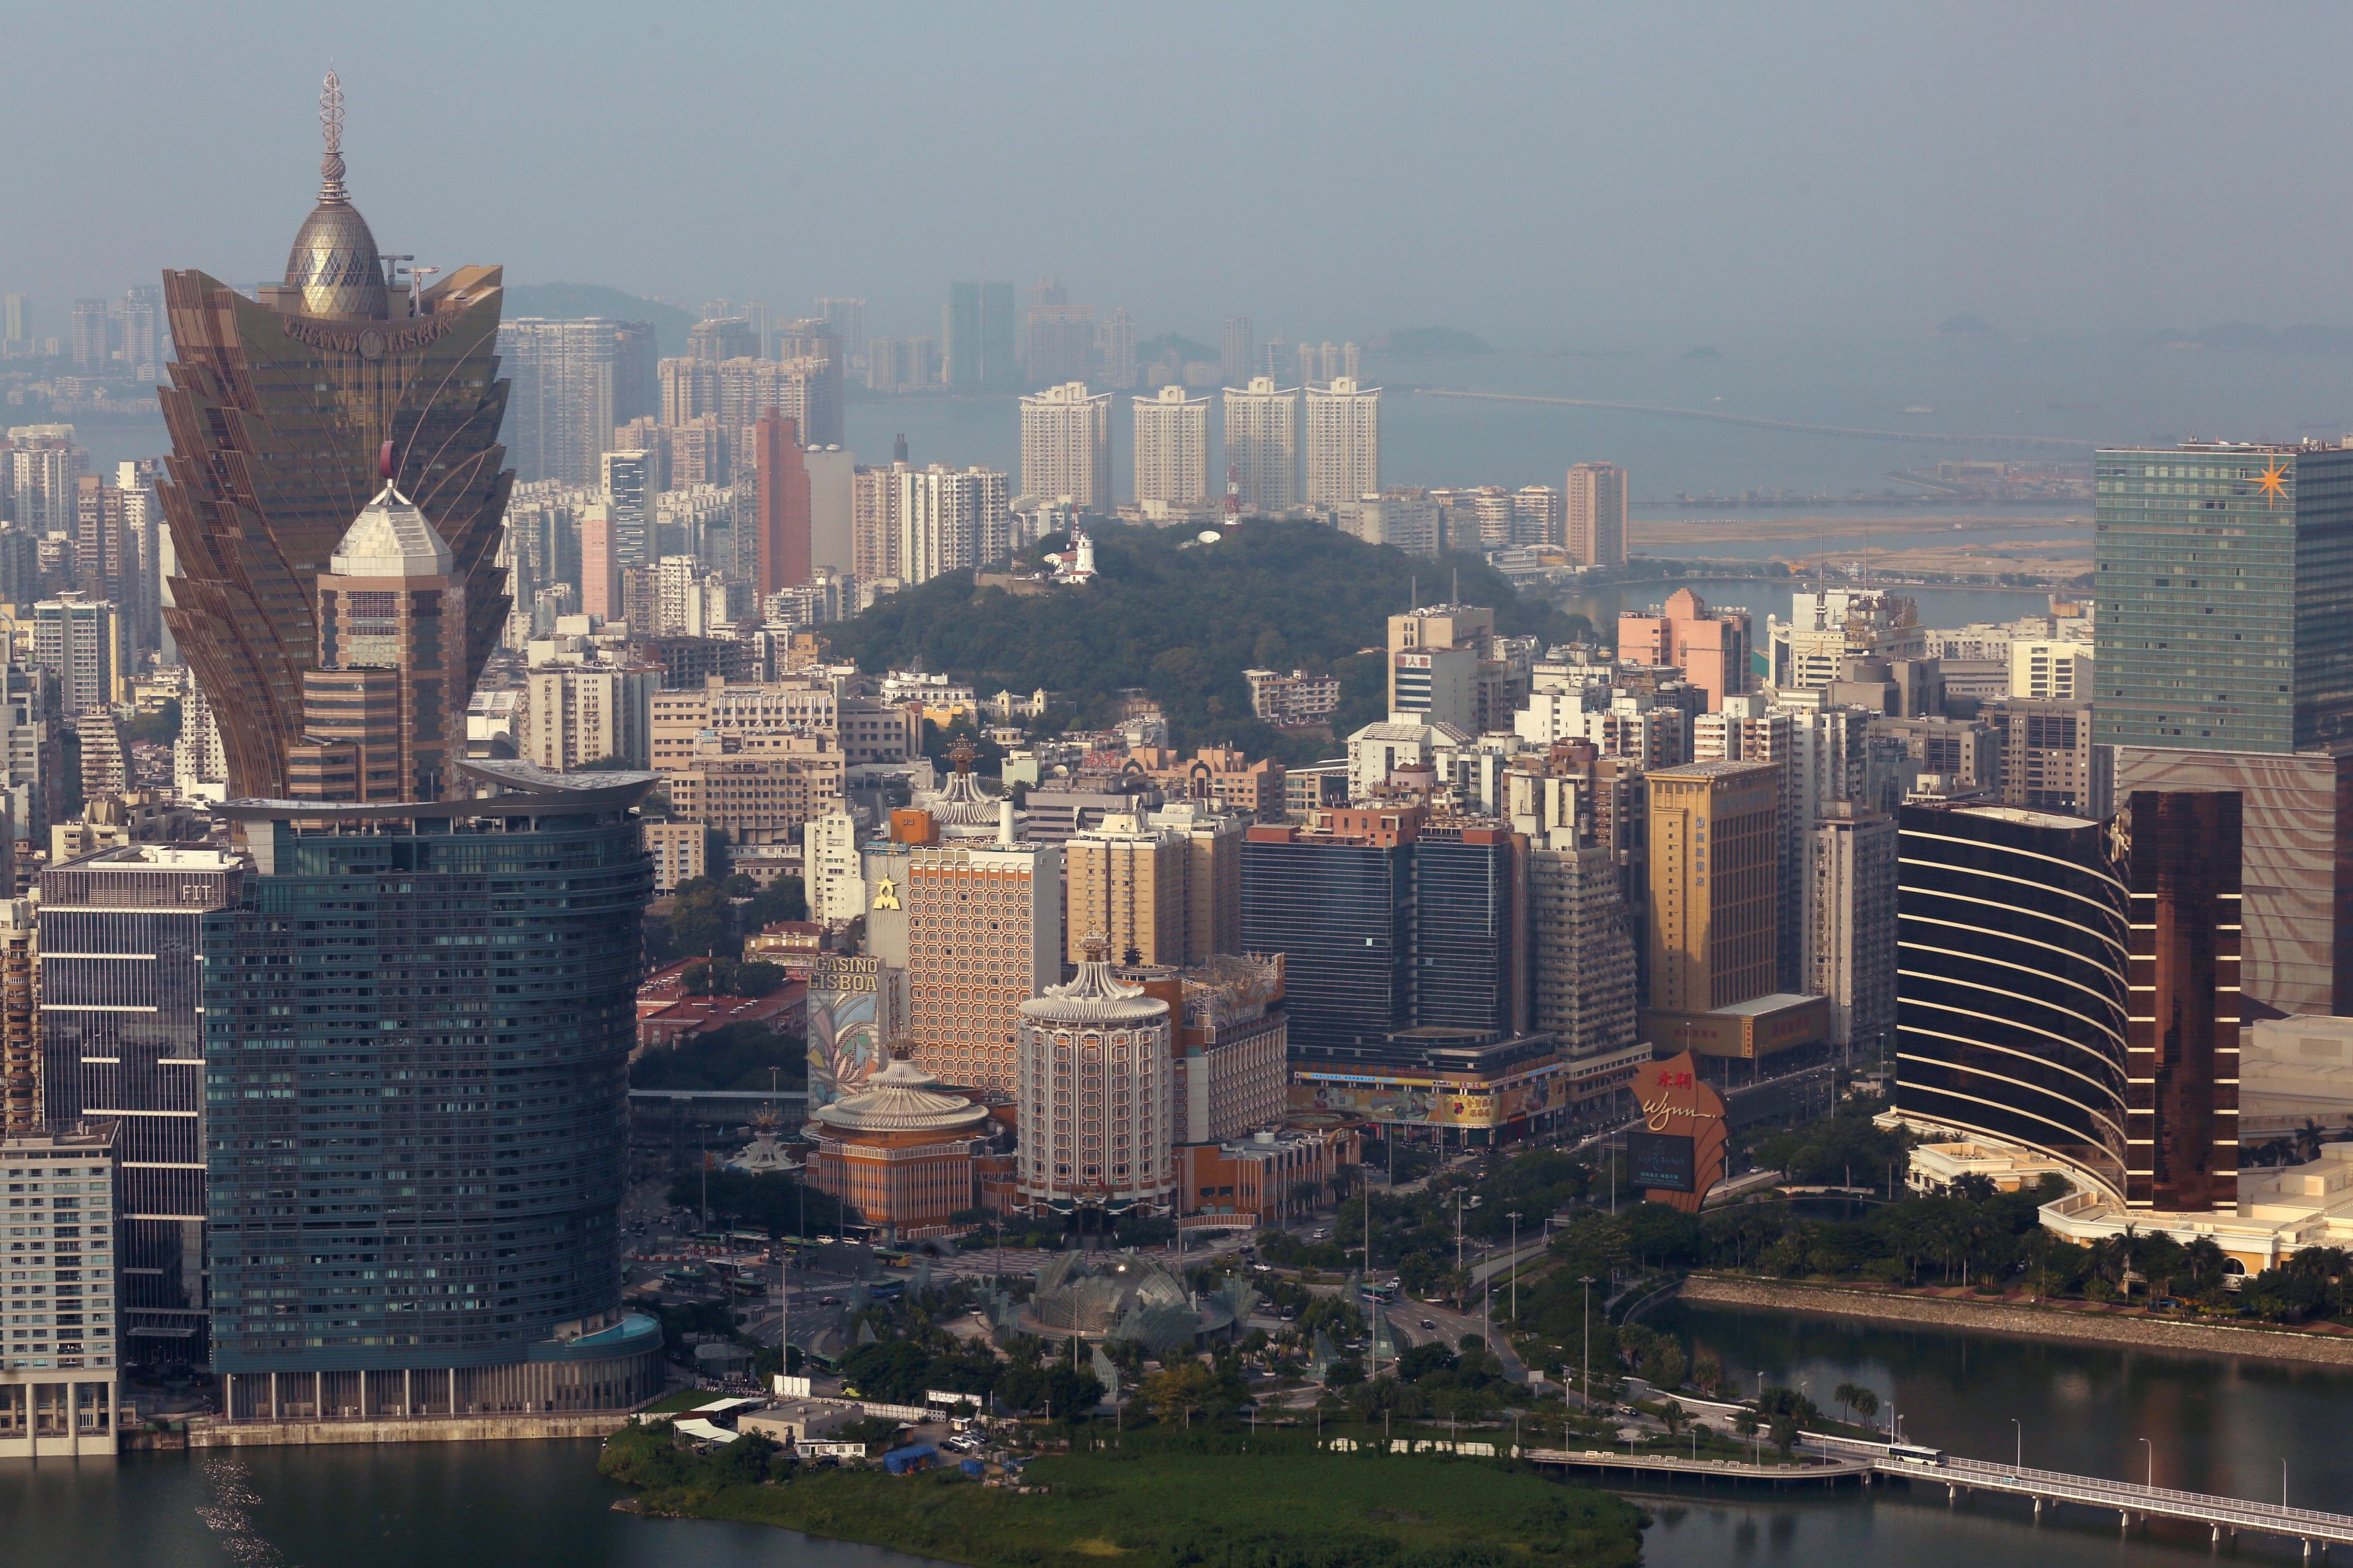 Protest-Free Macau to Win Financial Policy Rewards From China